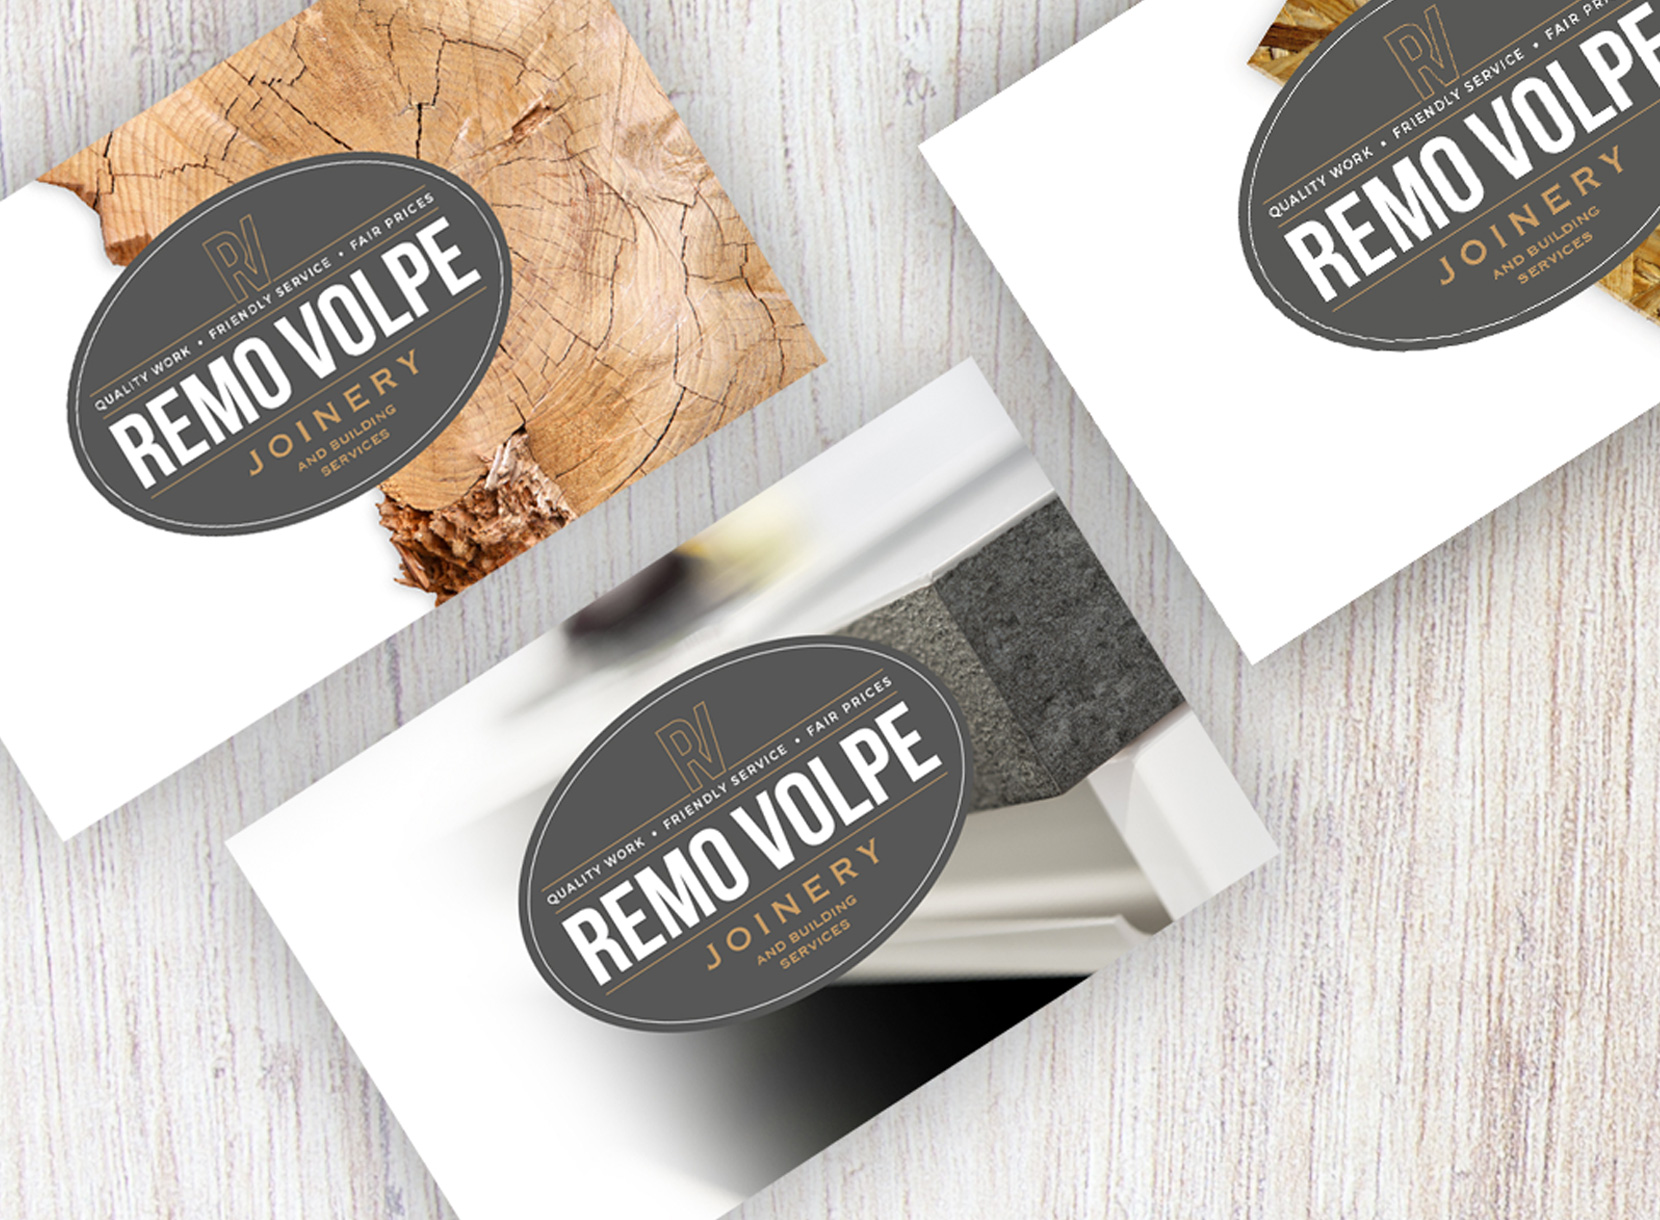 John Hamlin Brand & Web Design Remo Volpe Business Cards Design